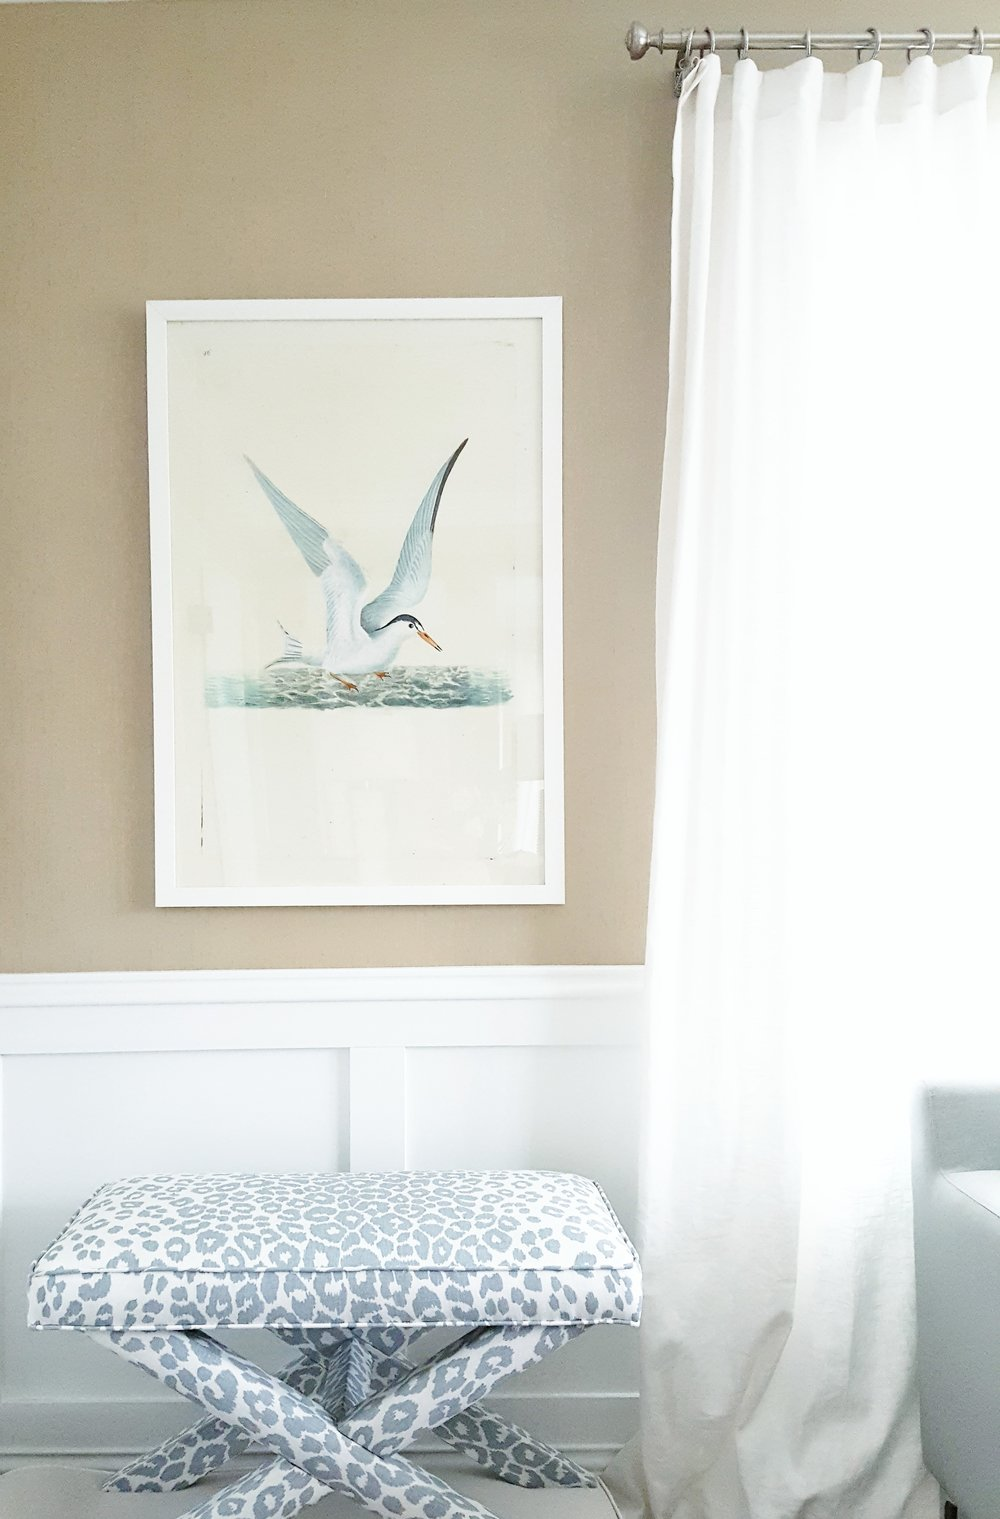 Aquatic Bird Print  - in Sitting Room by Ash Street Interiors